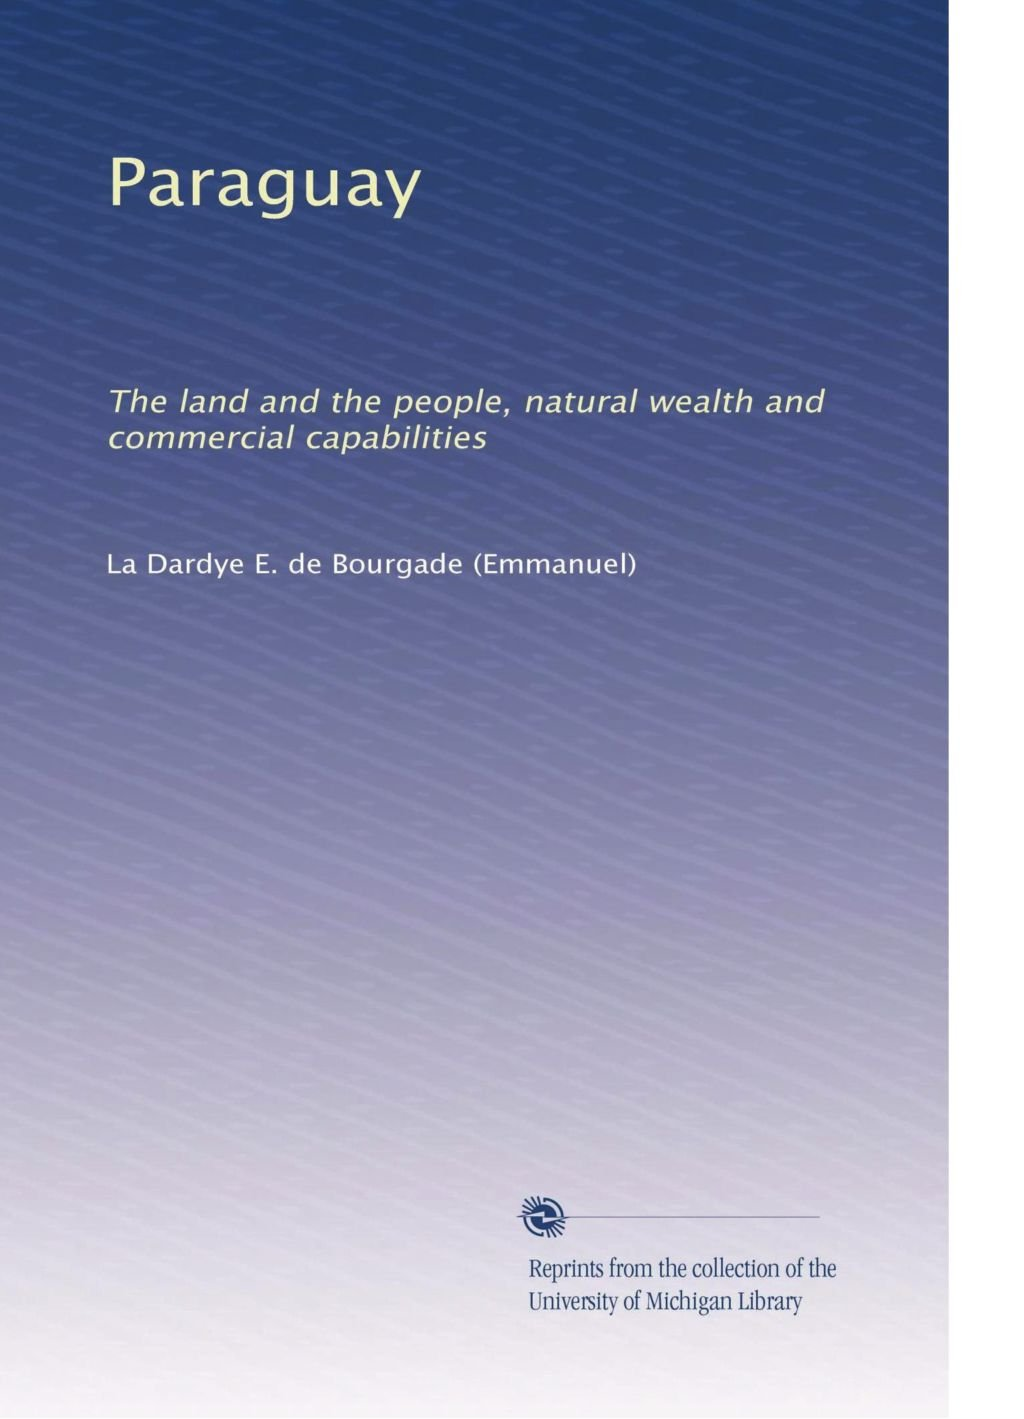 Paraguay: The land and the people, natural wealth and commercial capabilities